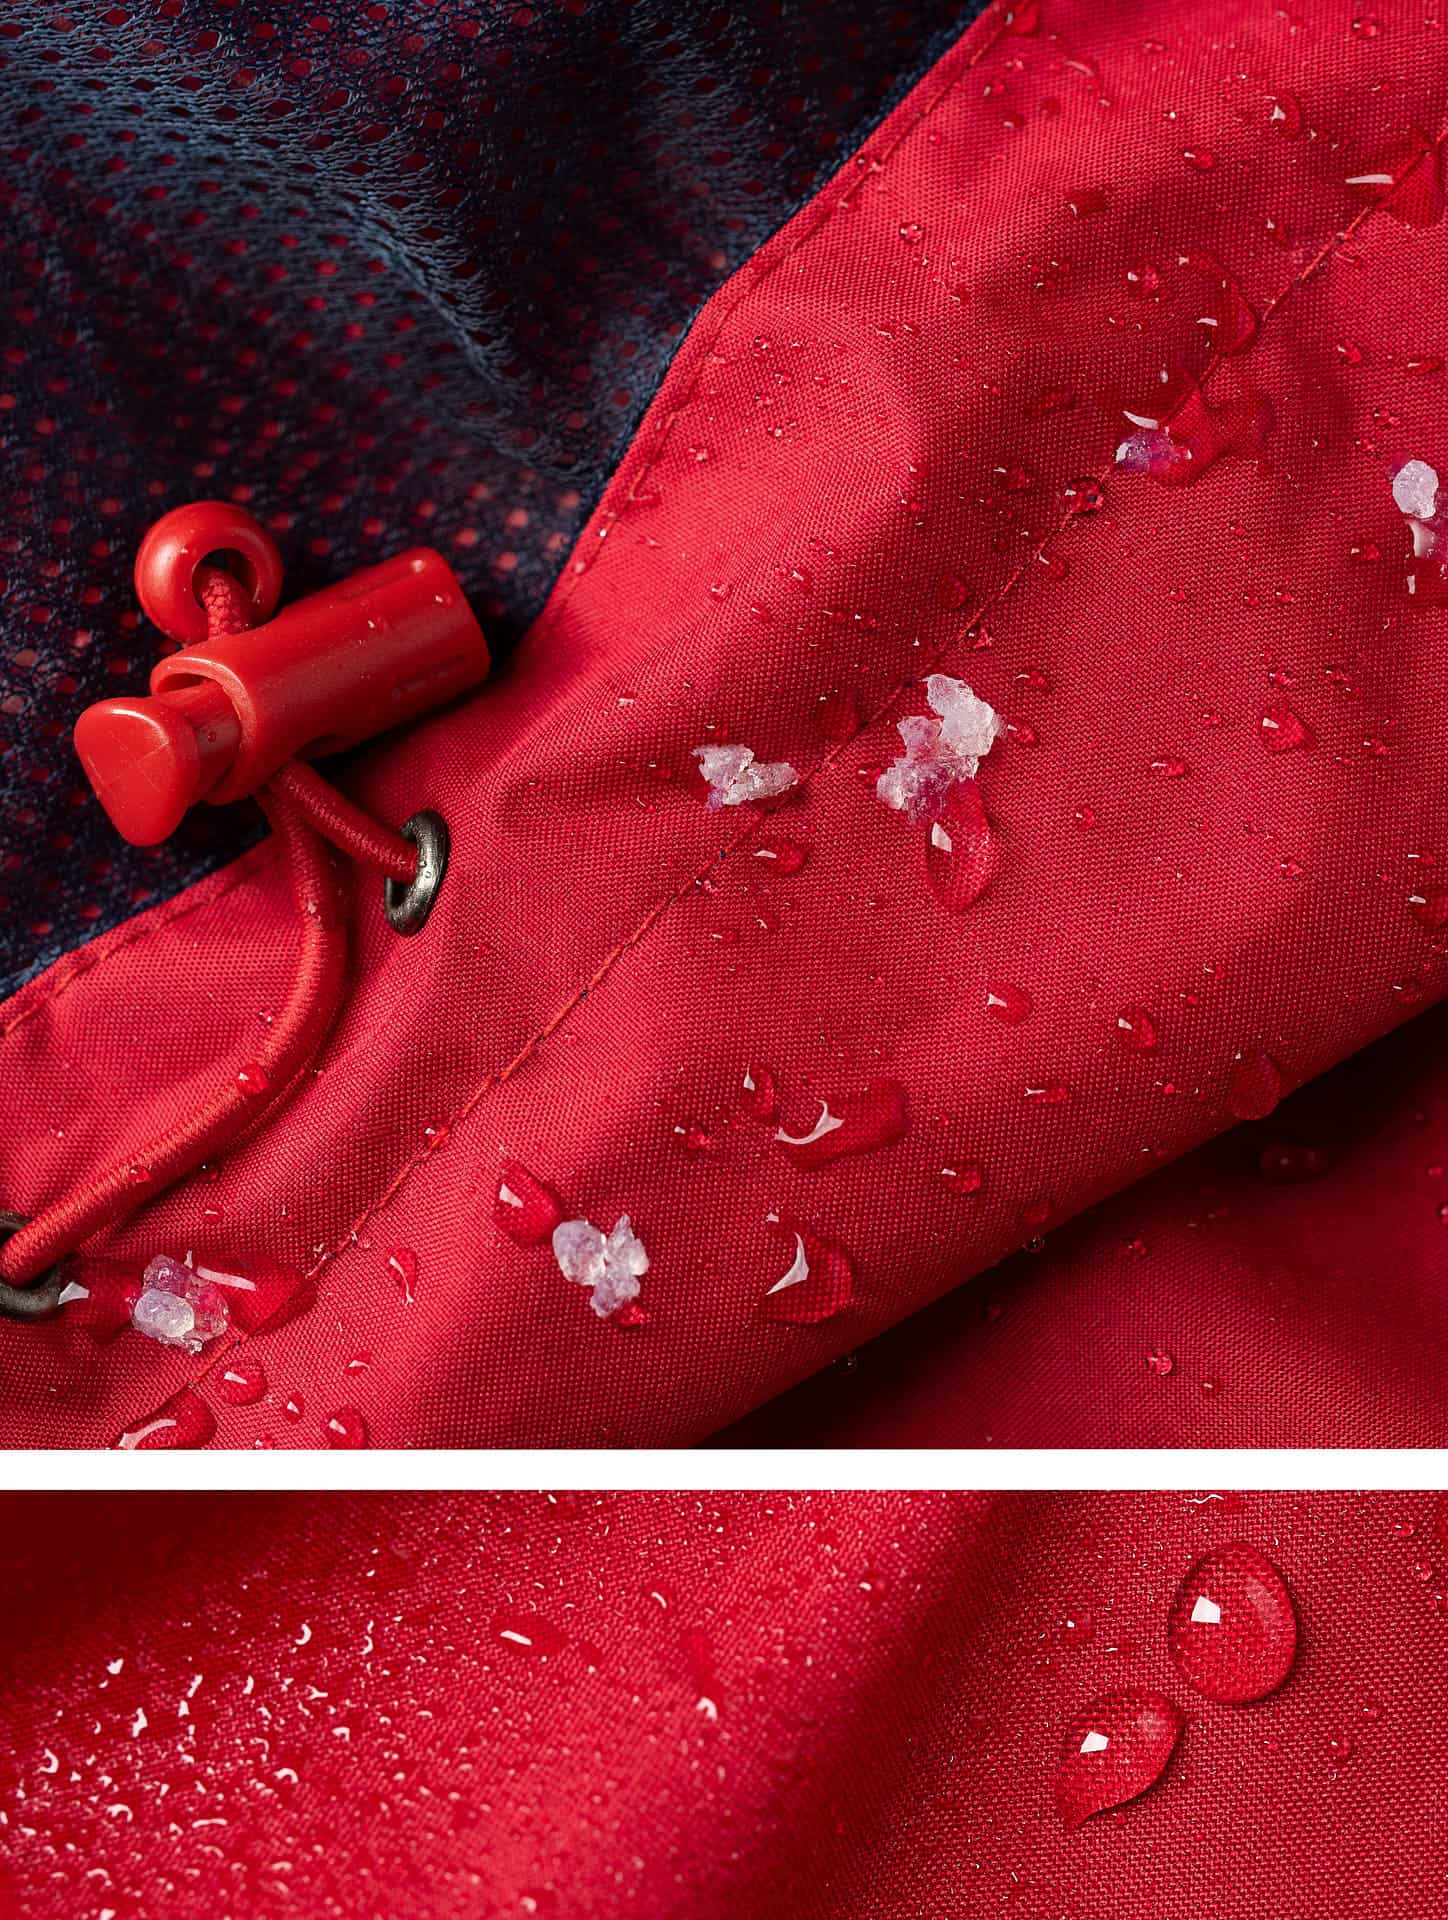 Sleet and rain on a red waterproof jacket with a blue inner liner.